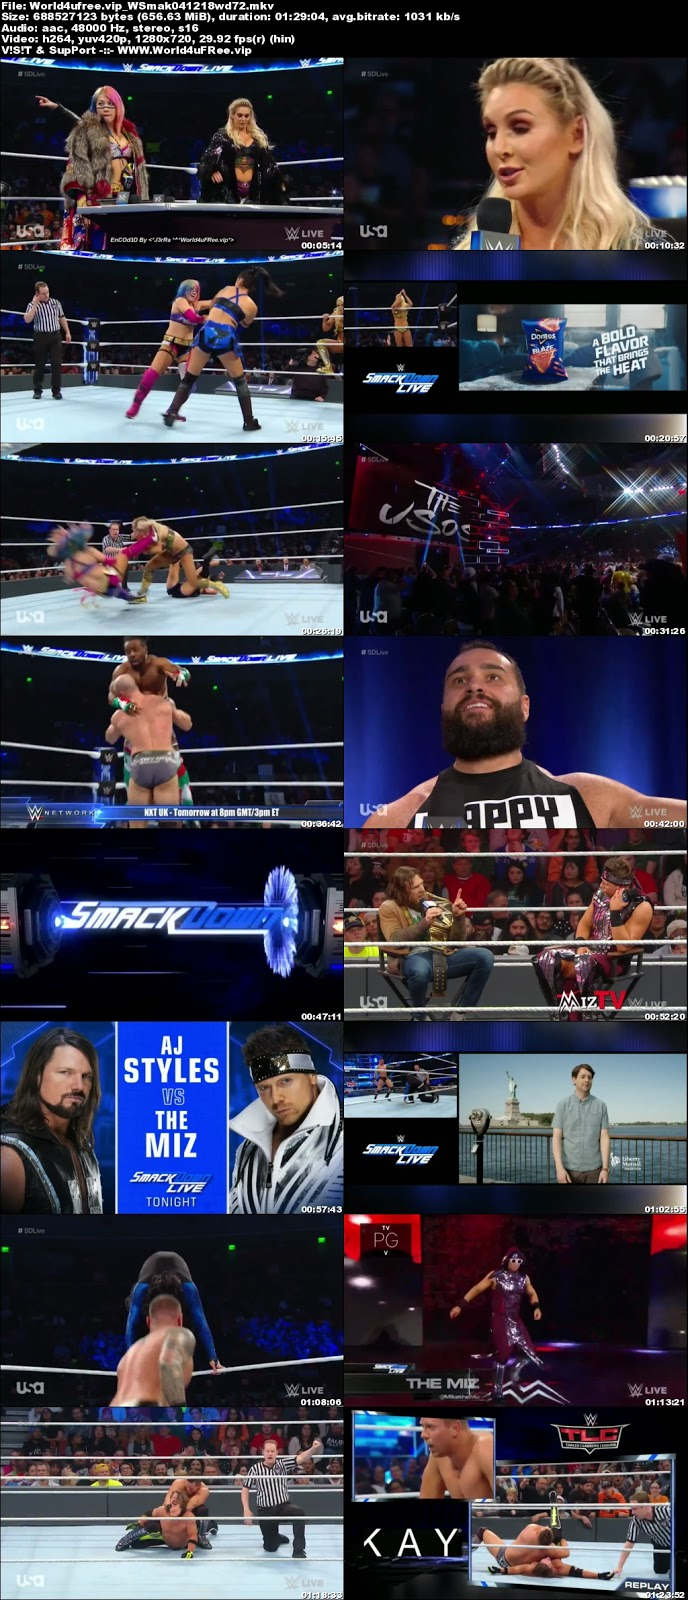 WWE Smackdown Live 04 DECEMBER 2018 720p HDTV 600MB x264  tv show wwe WWE Smackdown Live 04 DECEMBER 2018 HDTV 480p 650MB x264 compressed small size free download or watch online at world4ufree.vip